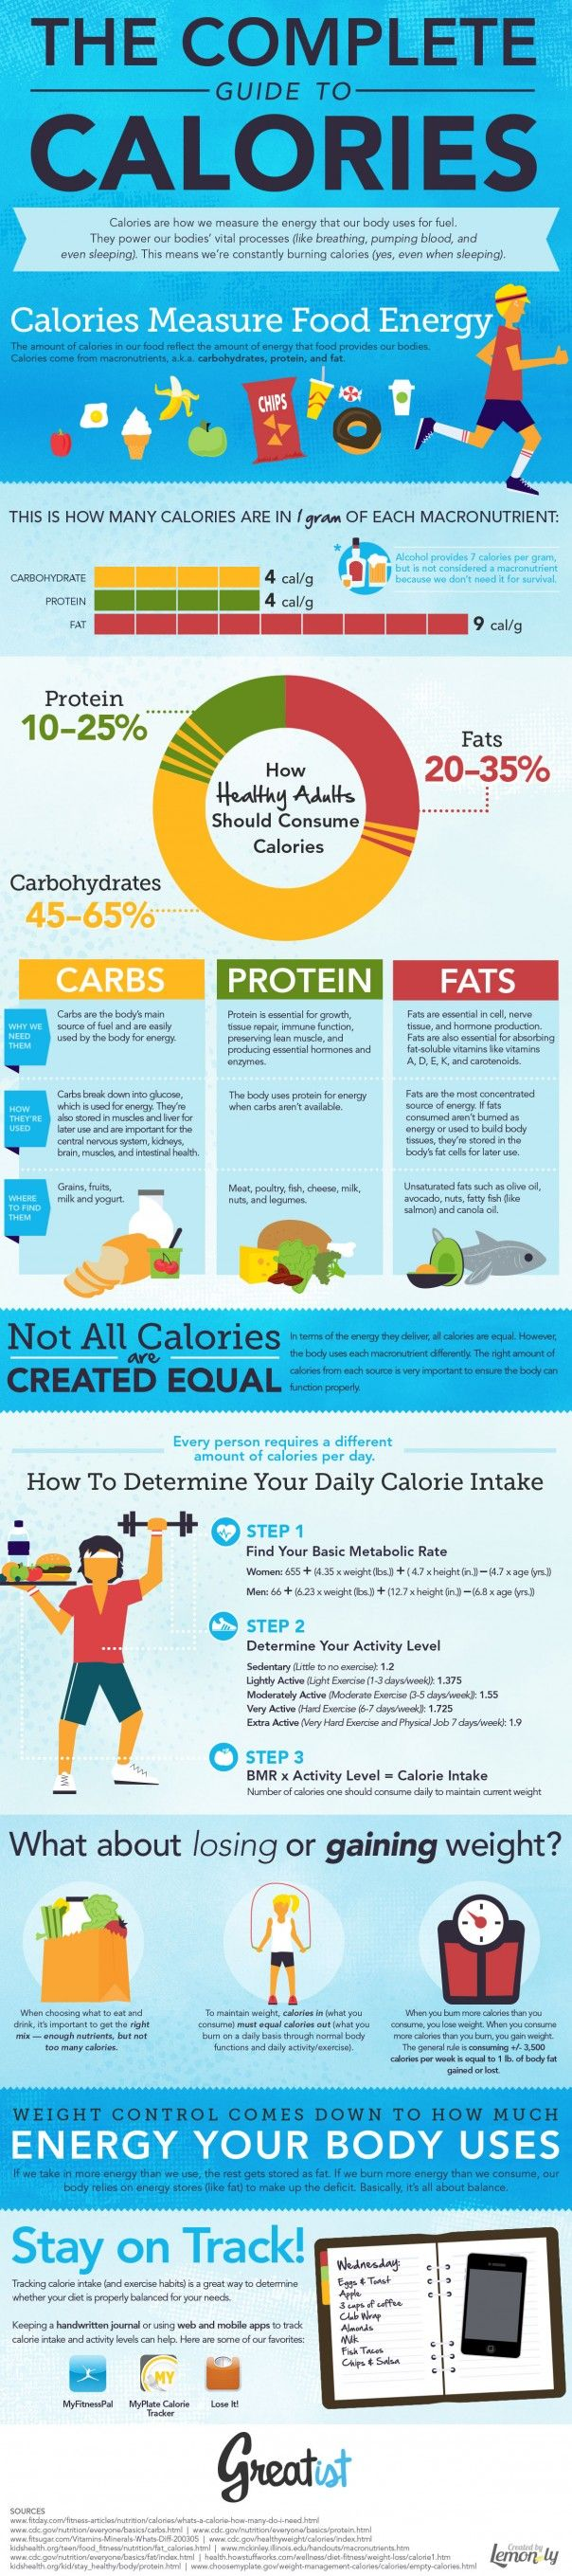 The Complete Guide to Calories- Pretty accurate description even though I hate